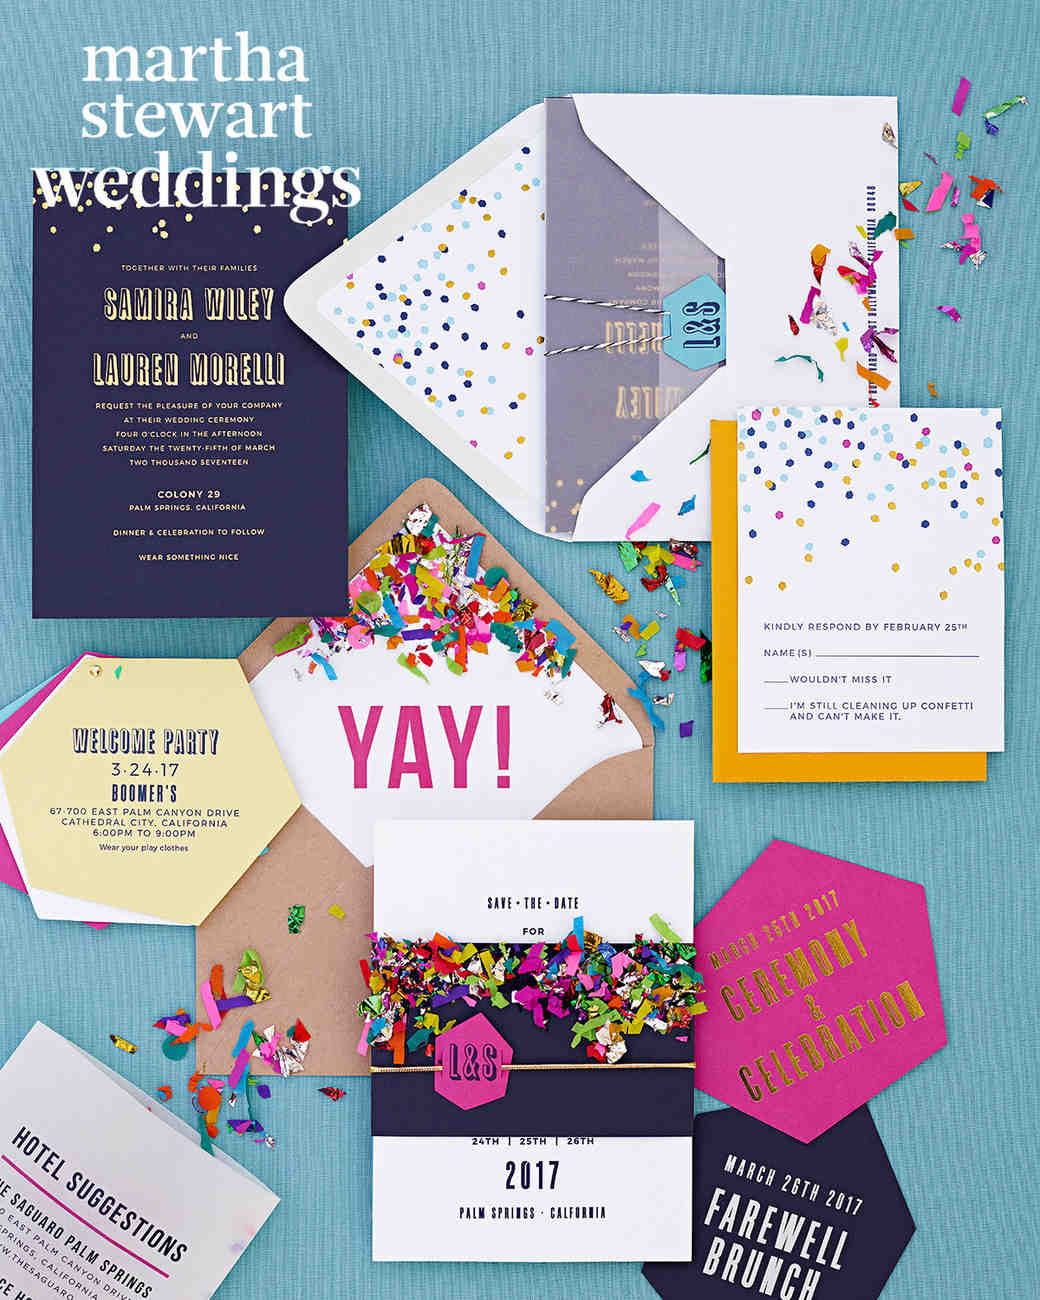 samira wiley lauren morelli wedding invite